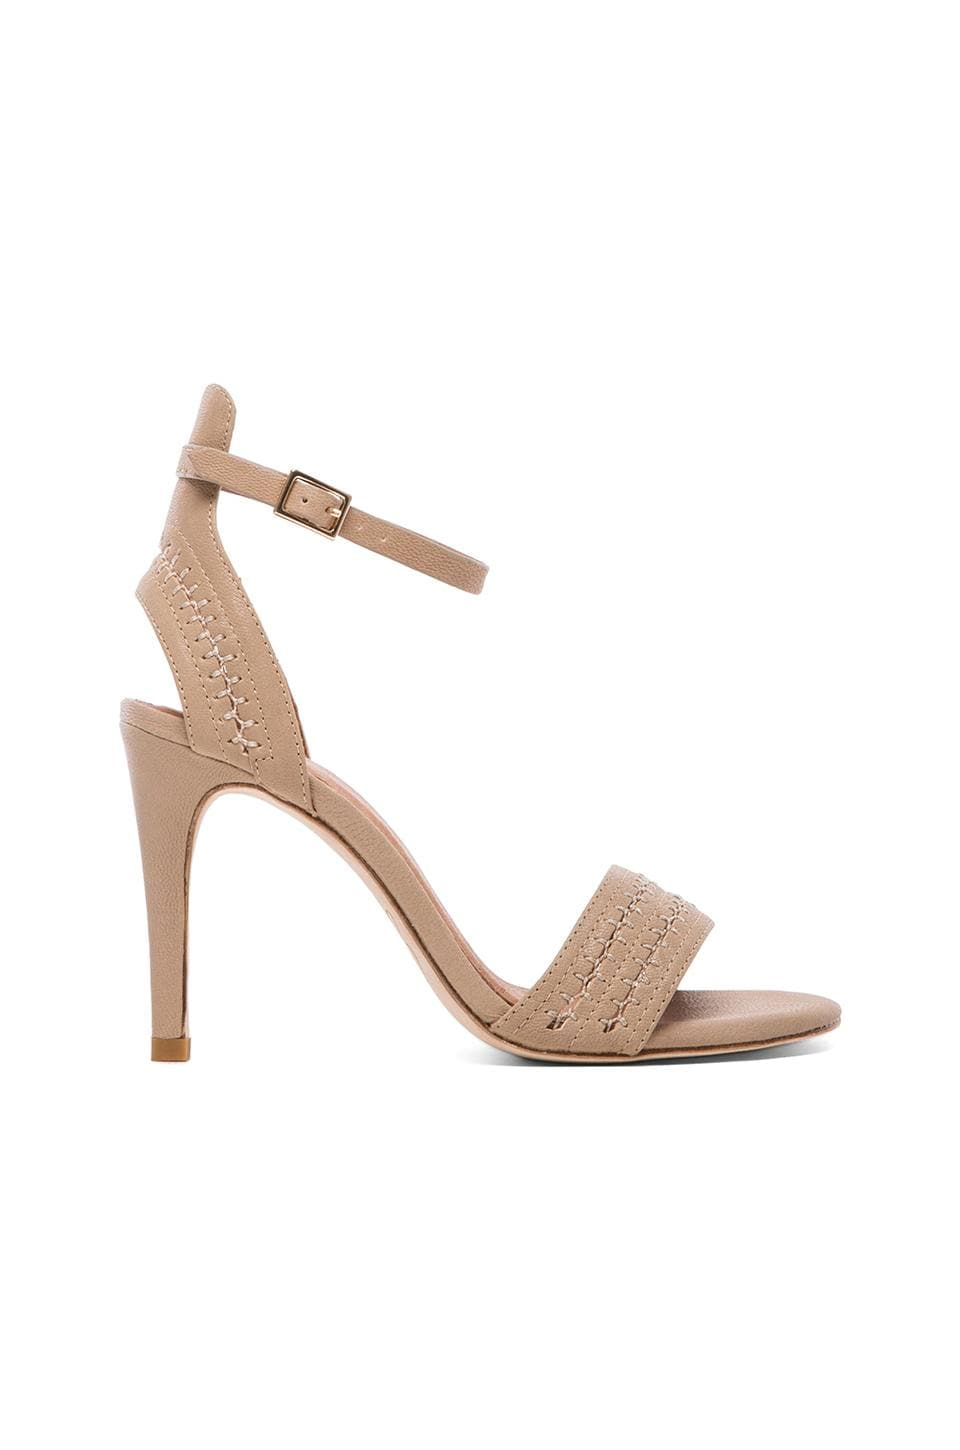 Joie Trune Heel in Dusty Pink Sand